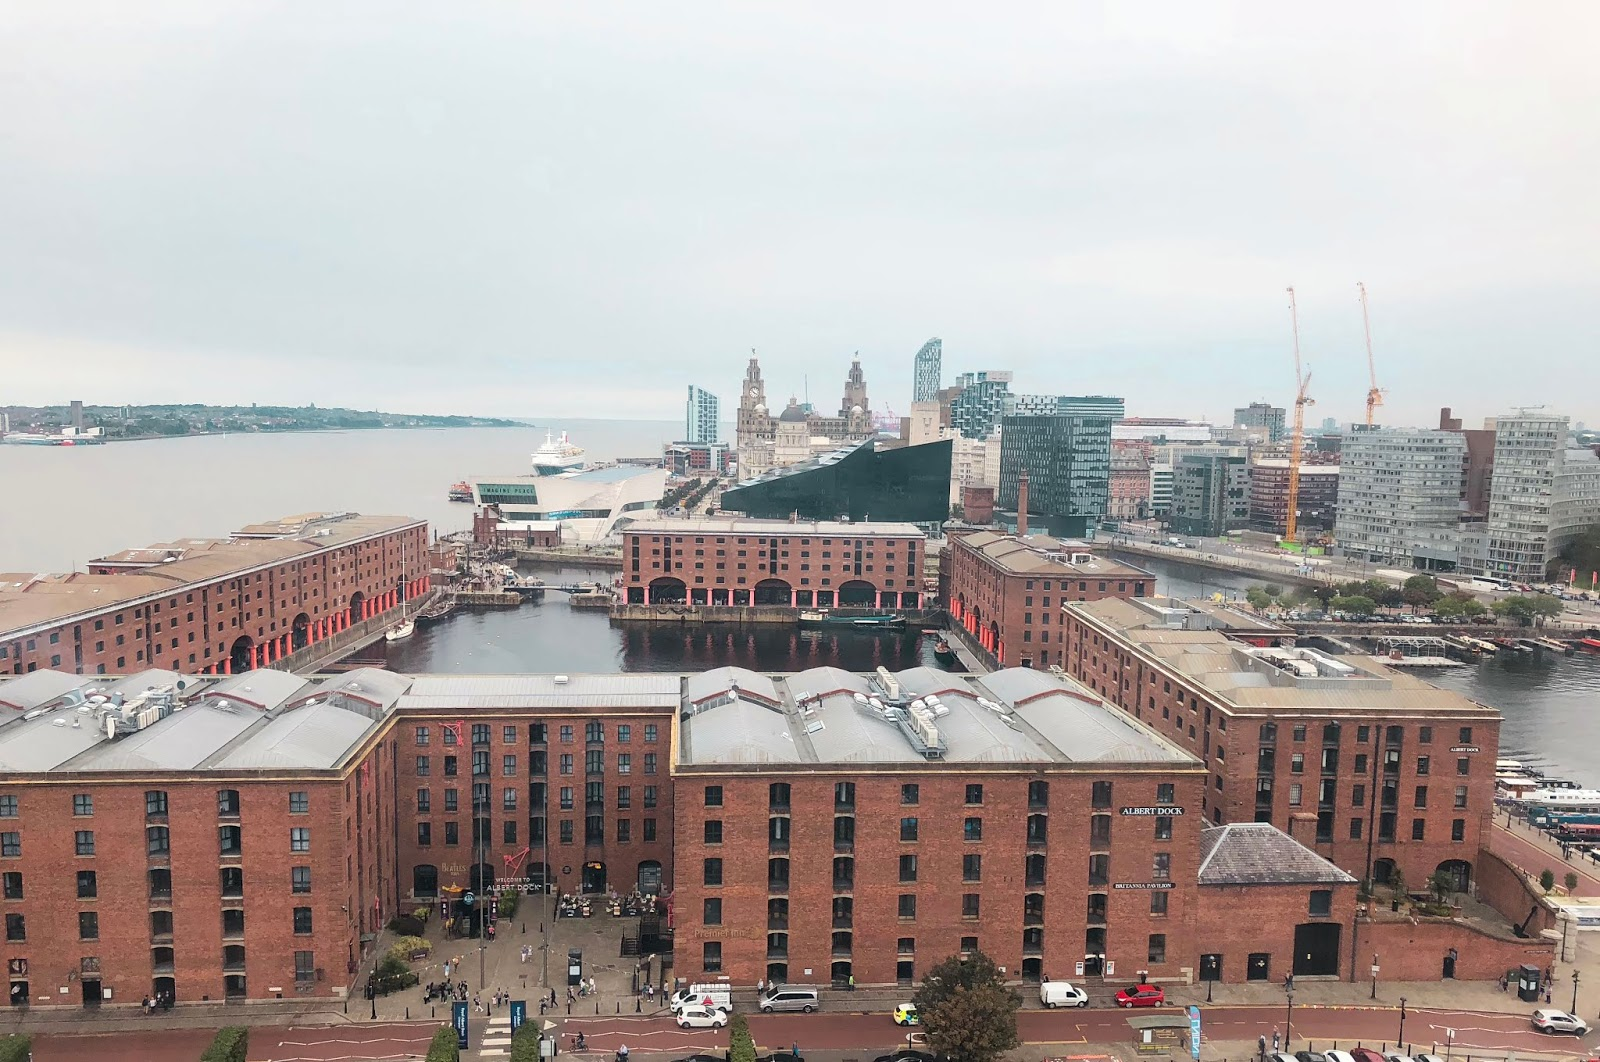 birds eye view of Liverpool taken from the Liverpool Wheel